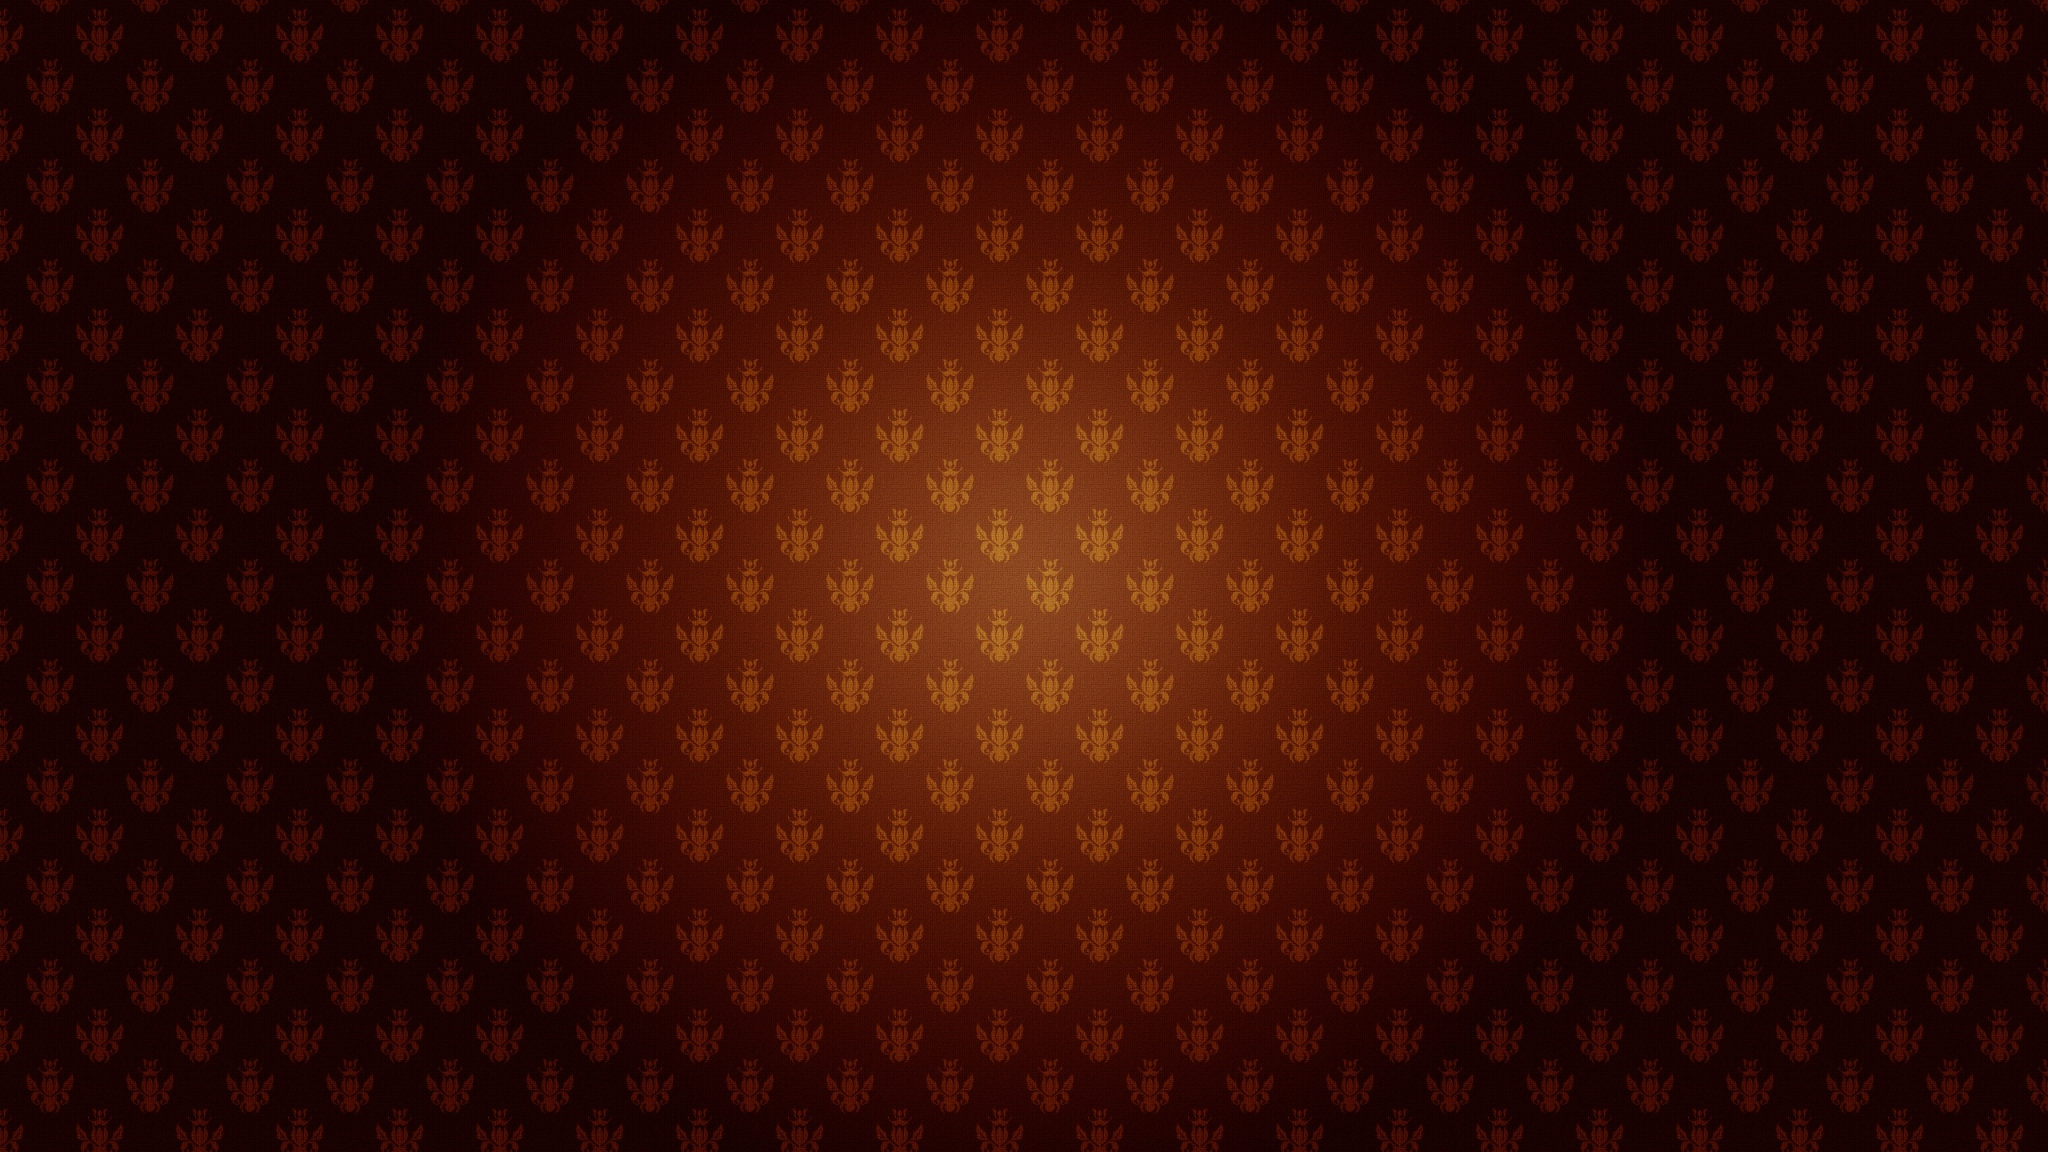 Brown background wallpaper 2048x1152 57243 for Wallpaper for walls